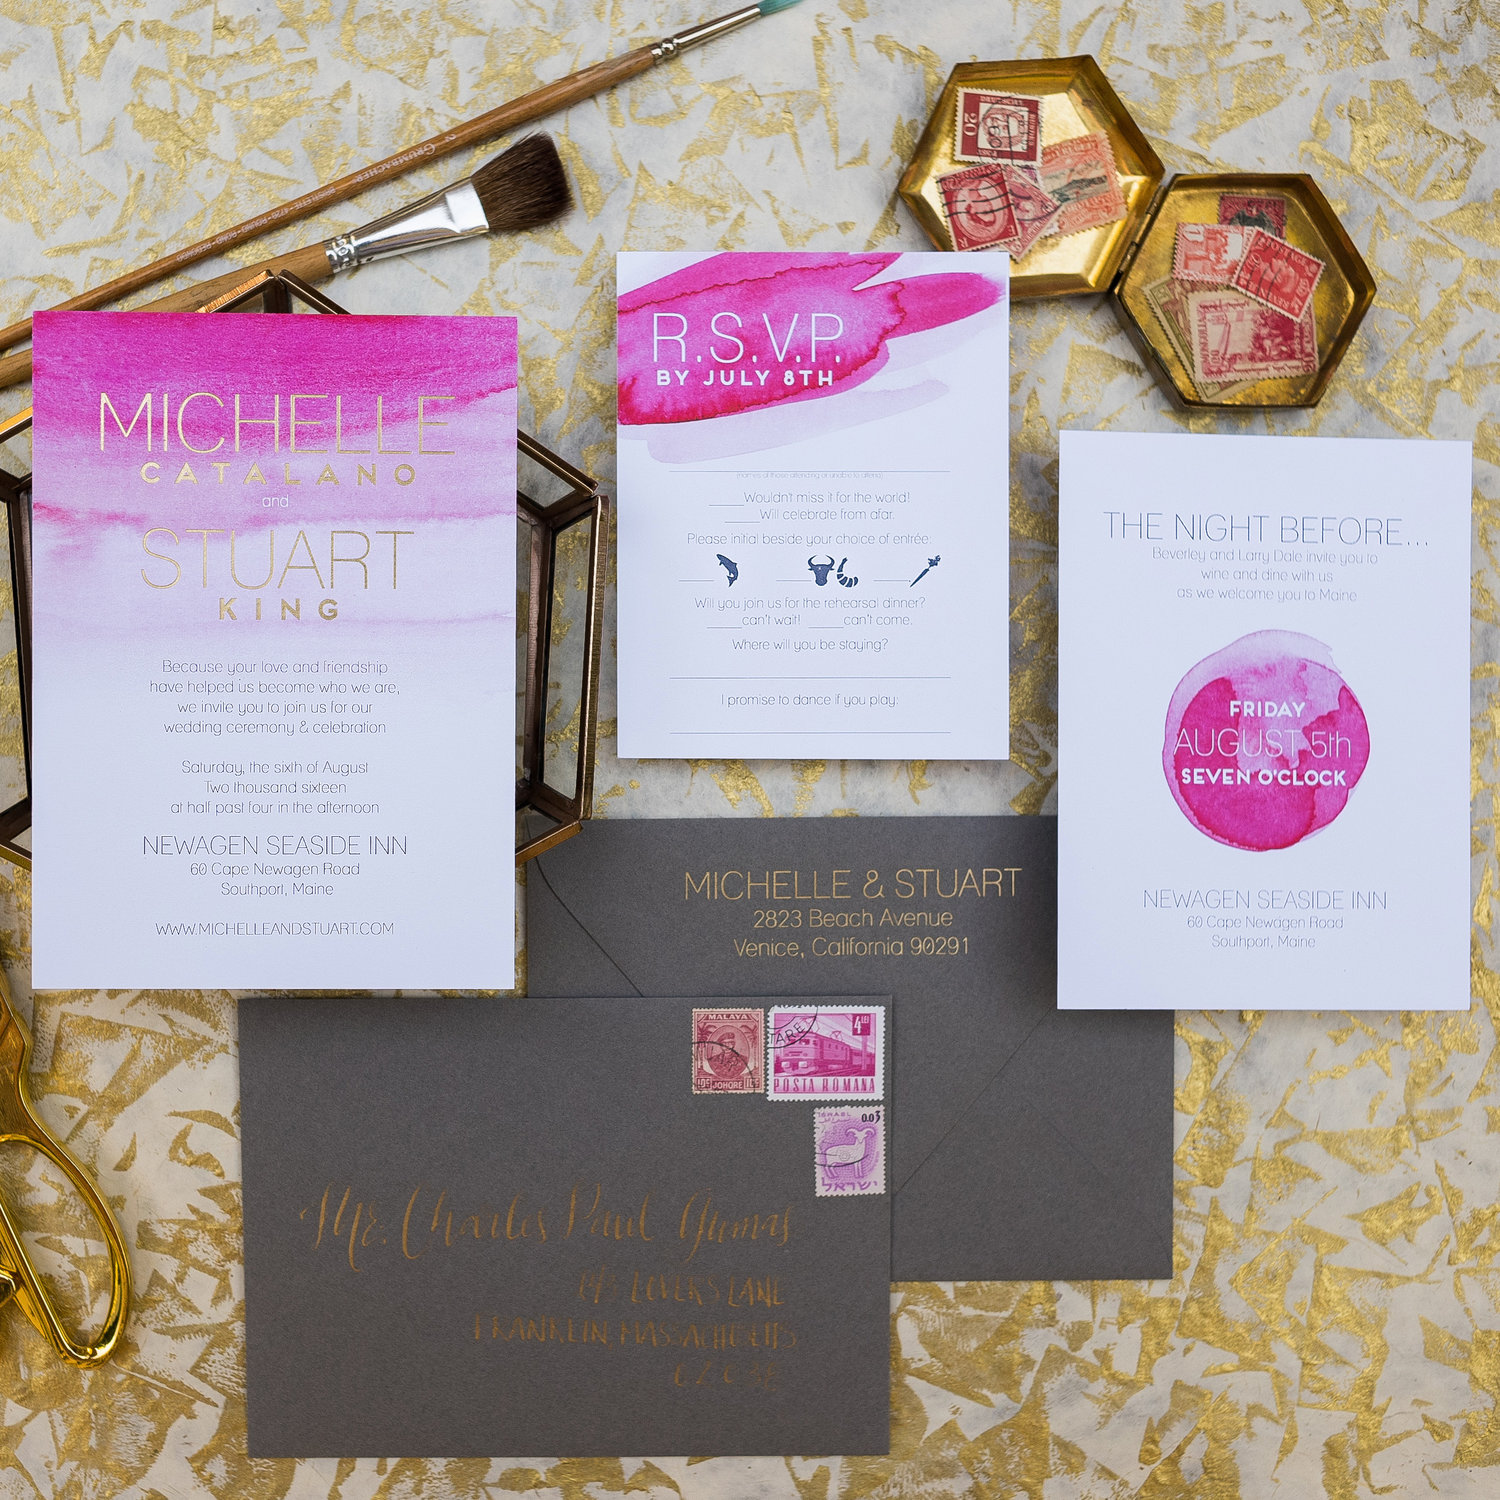 FUSCHIA WATERCOLOR & GOLD FOIL WEDDING INVITATIONS